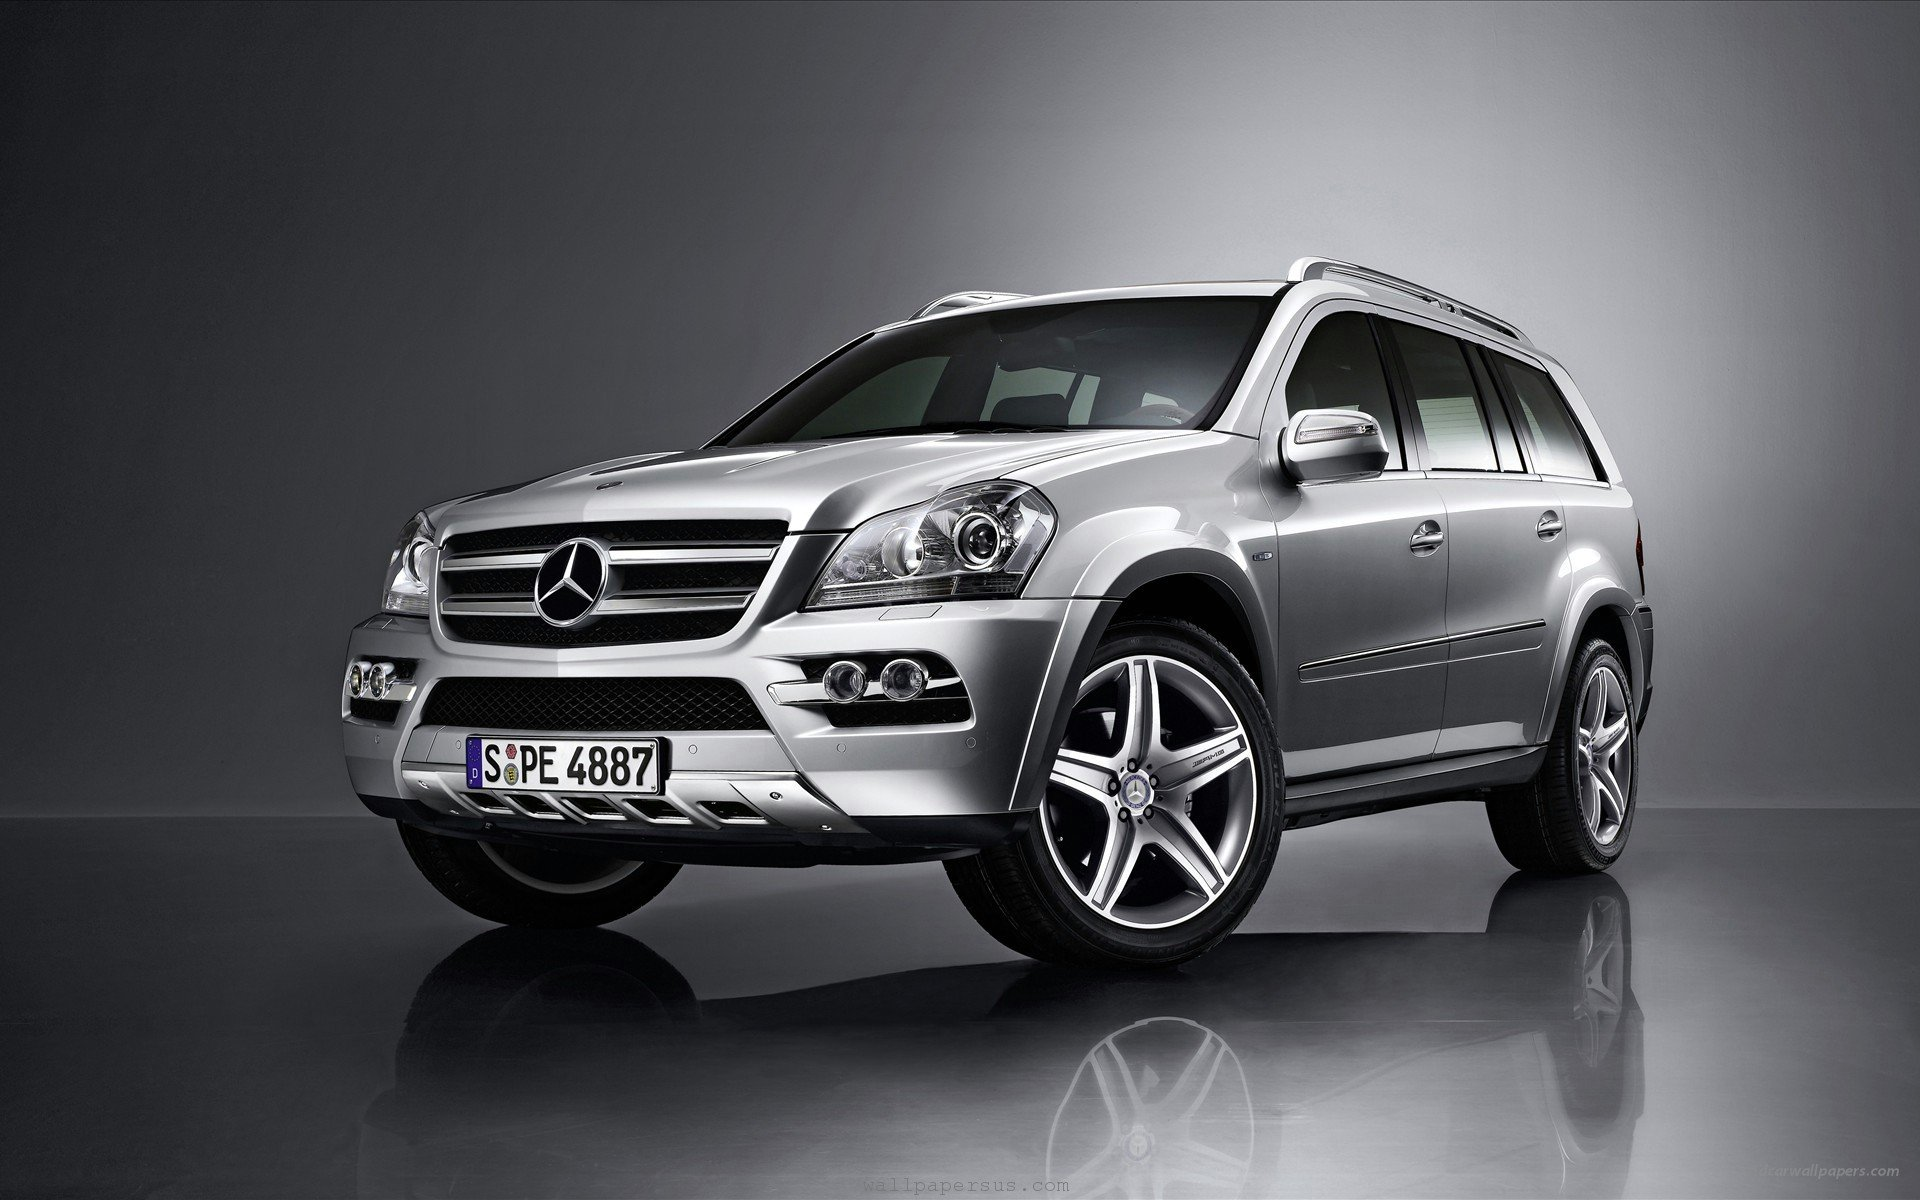 Mercedes Benz Suv car wallpaper HD Wallpaper 1920x1200